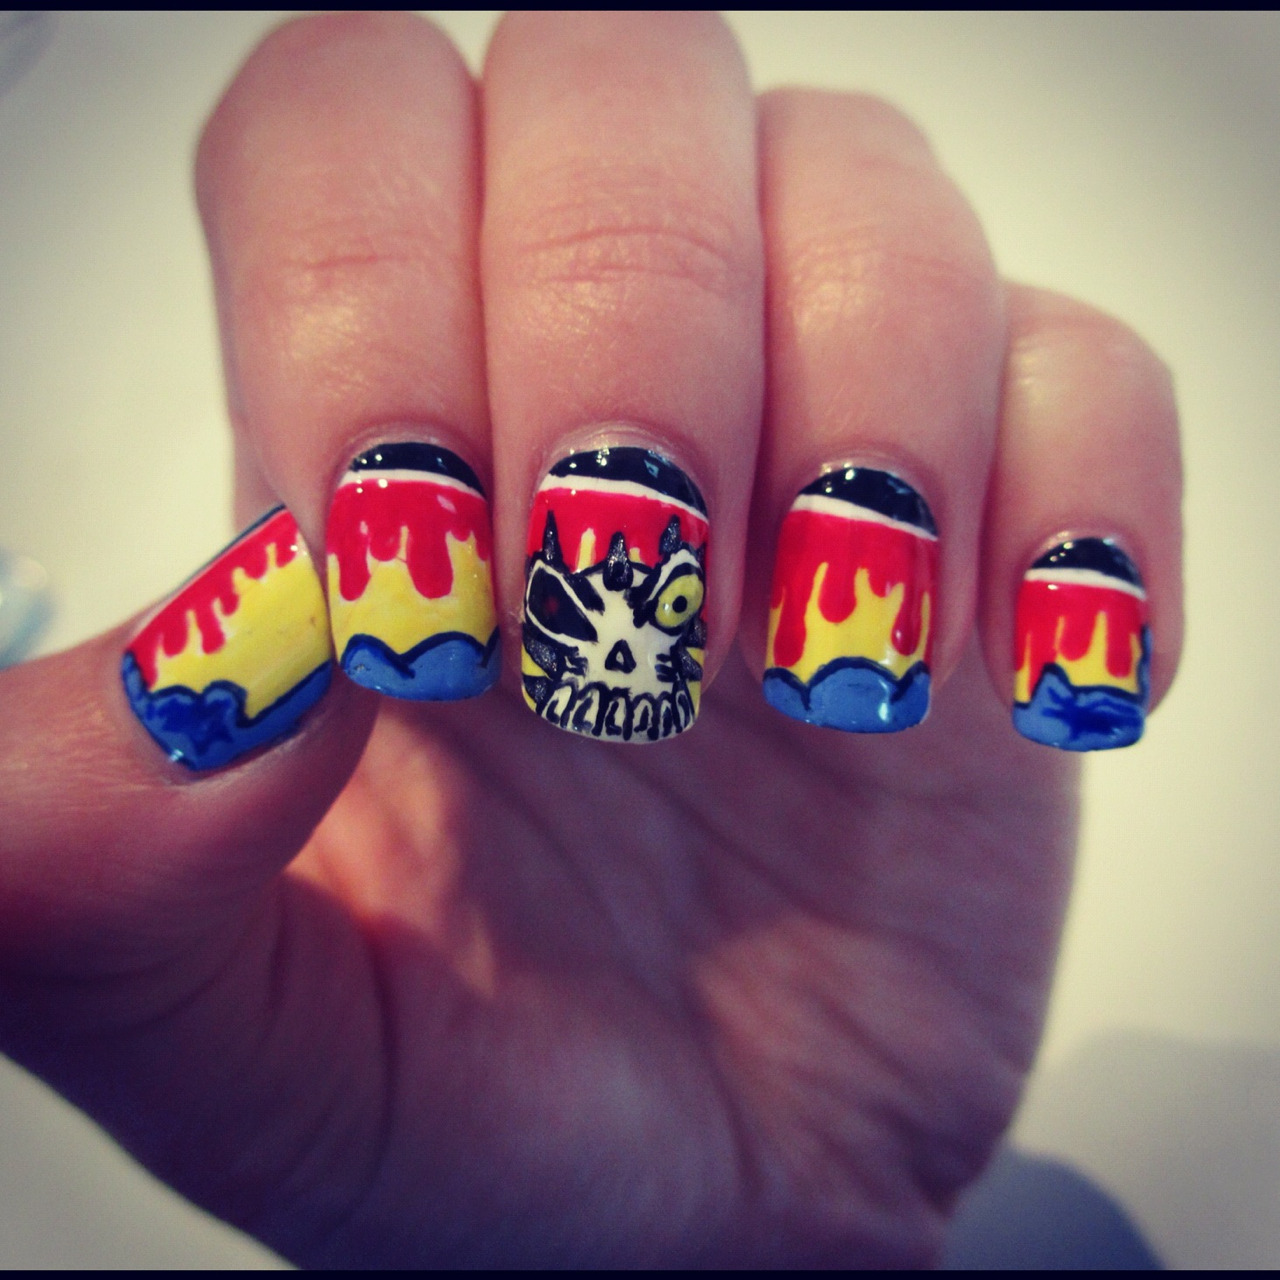 These are nails I did for a contest, which is still actually being voted on! I'll post the inspiration pic soon, but it's for a nail polish brand geared towards men called manglaze. Very cool, and the prize is pretty awesome as well. I've never wanted to win a comp more, because these nails took me TWO HOURS to do. So worth it, I reckon they're awesome. If you'd like to help me out, go to @lacqueredaffair on instagram, and like these nails. On fb go to A Lacquered Affair, head to the 'mani-faces of manglaze' album and like them there, or go to alacqueredaffair.onsugar.com and vote for them there. It would mean the world of you guys would help me out. :)